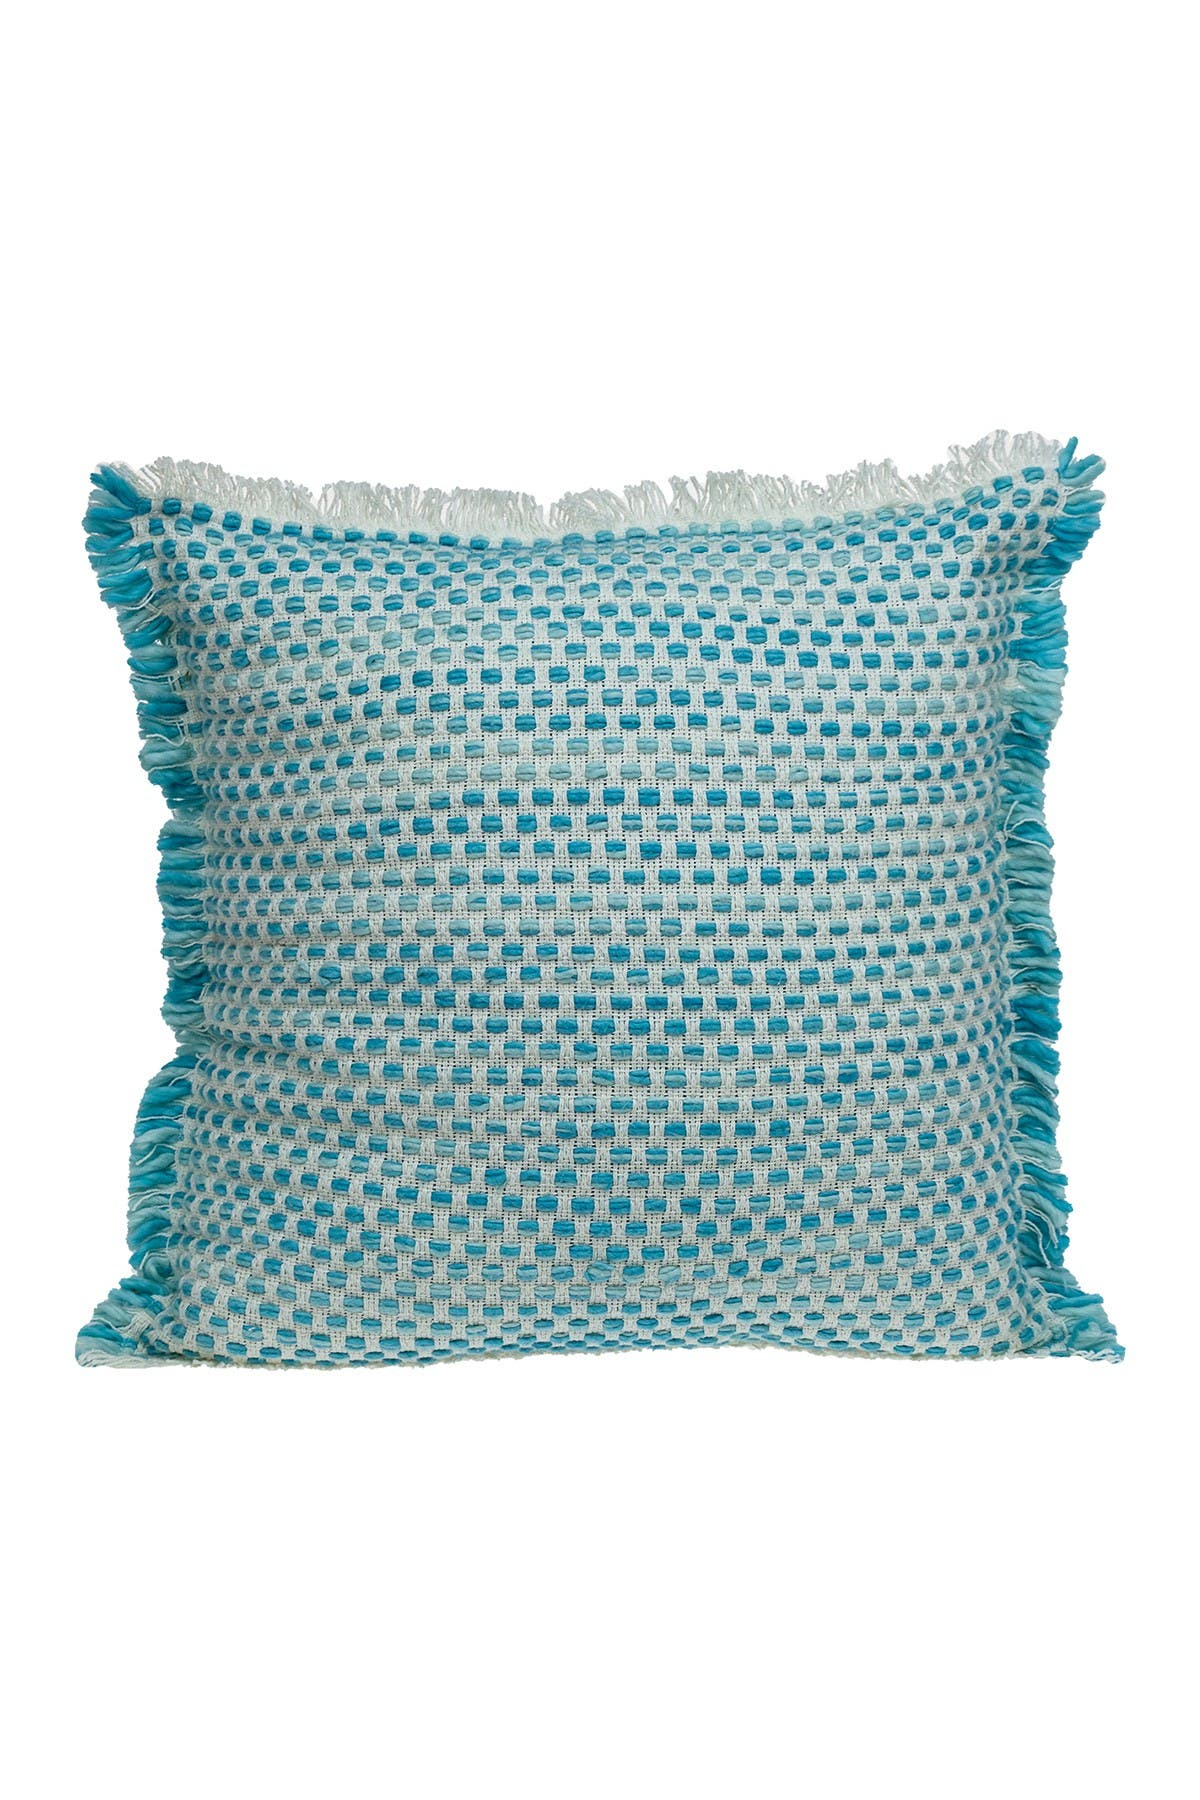 Image of Parkland Collection Raindrop Transitional Light Blue & Turquoise Throw Pillow